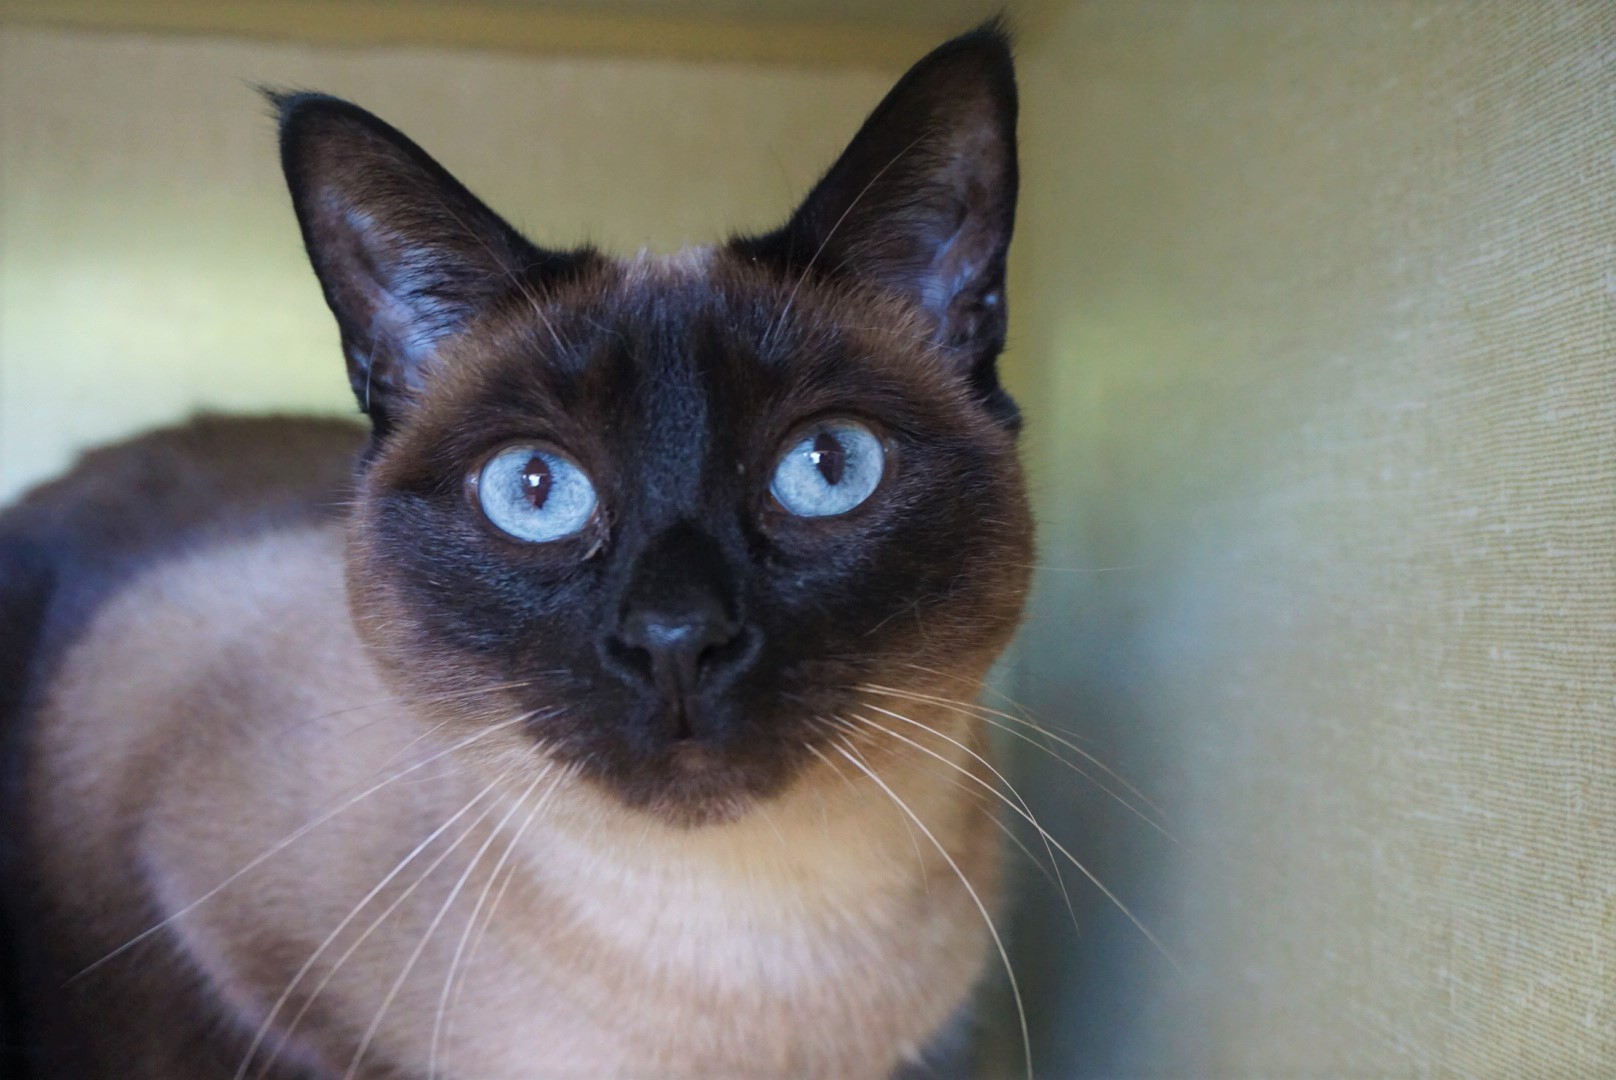 *MUST GO AS A PAIR WITH TBEAU* Siamese Cross Seal Point Female - Spayed Date of birth: May 2015 Tbeau and TC are here to double your fun! This pair is the perfect balance of sweetness and personality. Tbeau is more of the strong silent type, he hangs back a little bit but enjoys being petted and brushed and won't say no to a treat! TC is a sweetie with a dash of sass, she will let you know when you're not paying enough attention to her AND when she's had enough! Both like to play and seem especially fond of a feathery string toy. You'll be glad you added this duo to your family! 😽😽 They must be adopted as a pair. Their adoption fee is $180.00. If you would like to meet this dynamic duo, you can visit TC and TBeau at the Rescue Siamese adoption centre at 38 Barberry Road, during regular store hours.